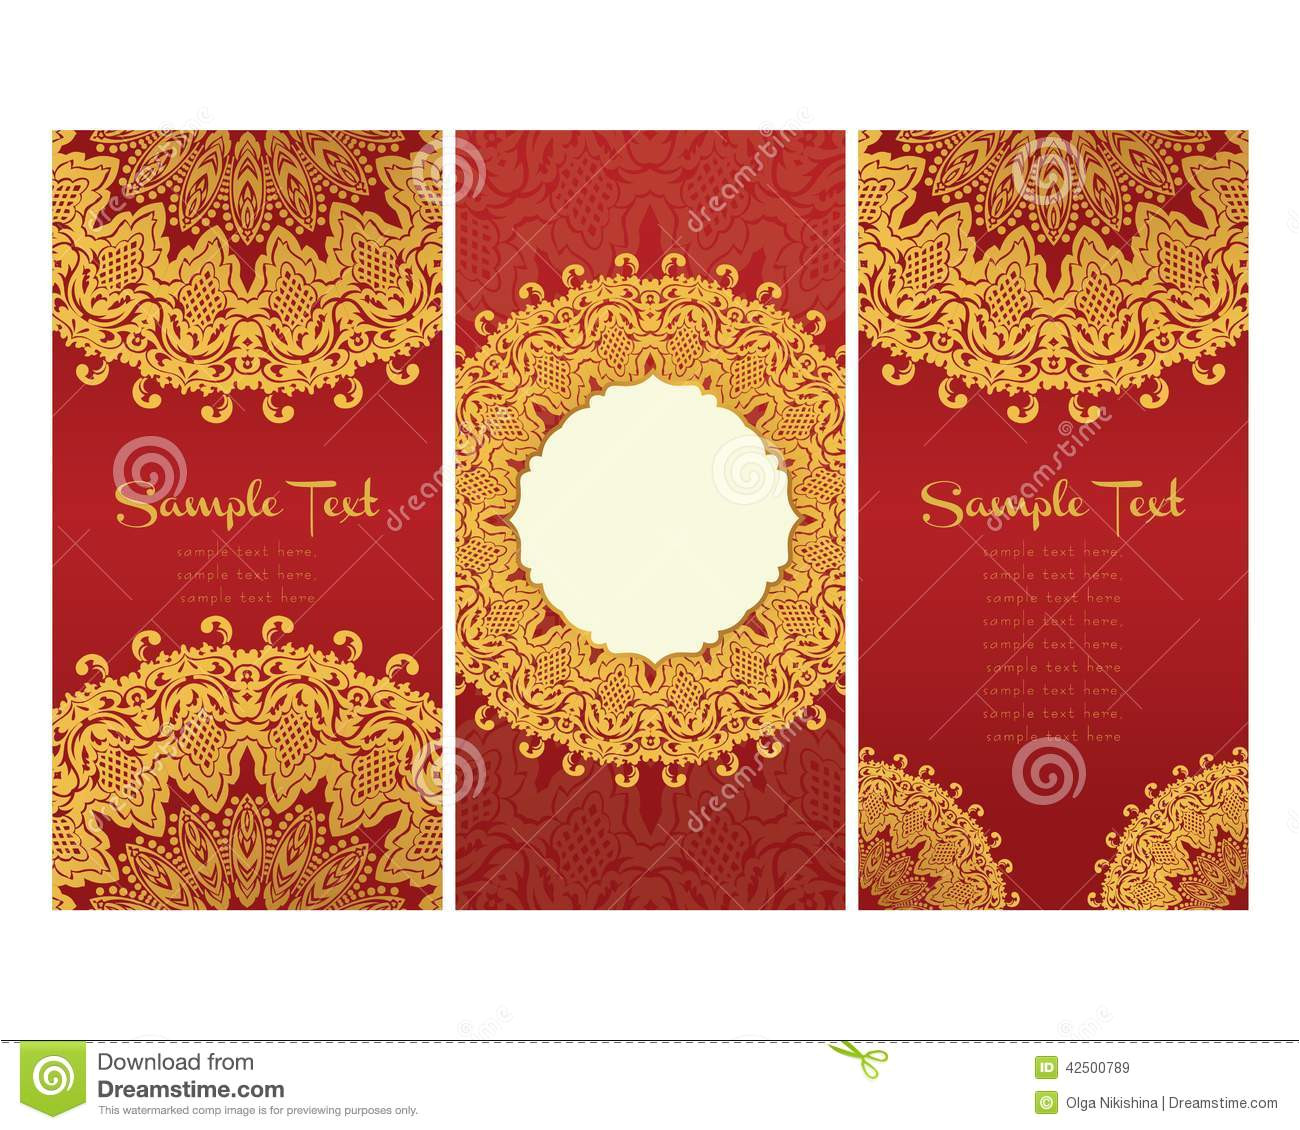 greeting cards east style red background floral motifs light gold persian template design wedding invitation 42500789 jpg